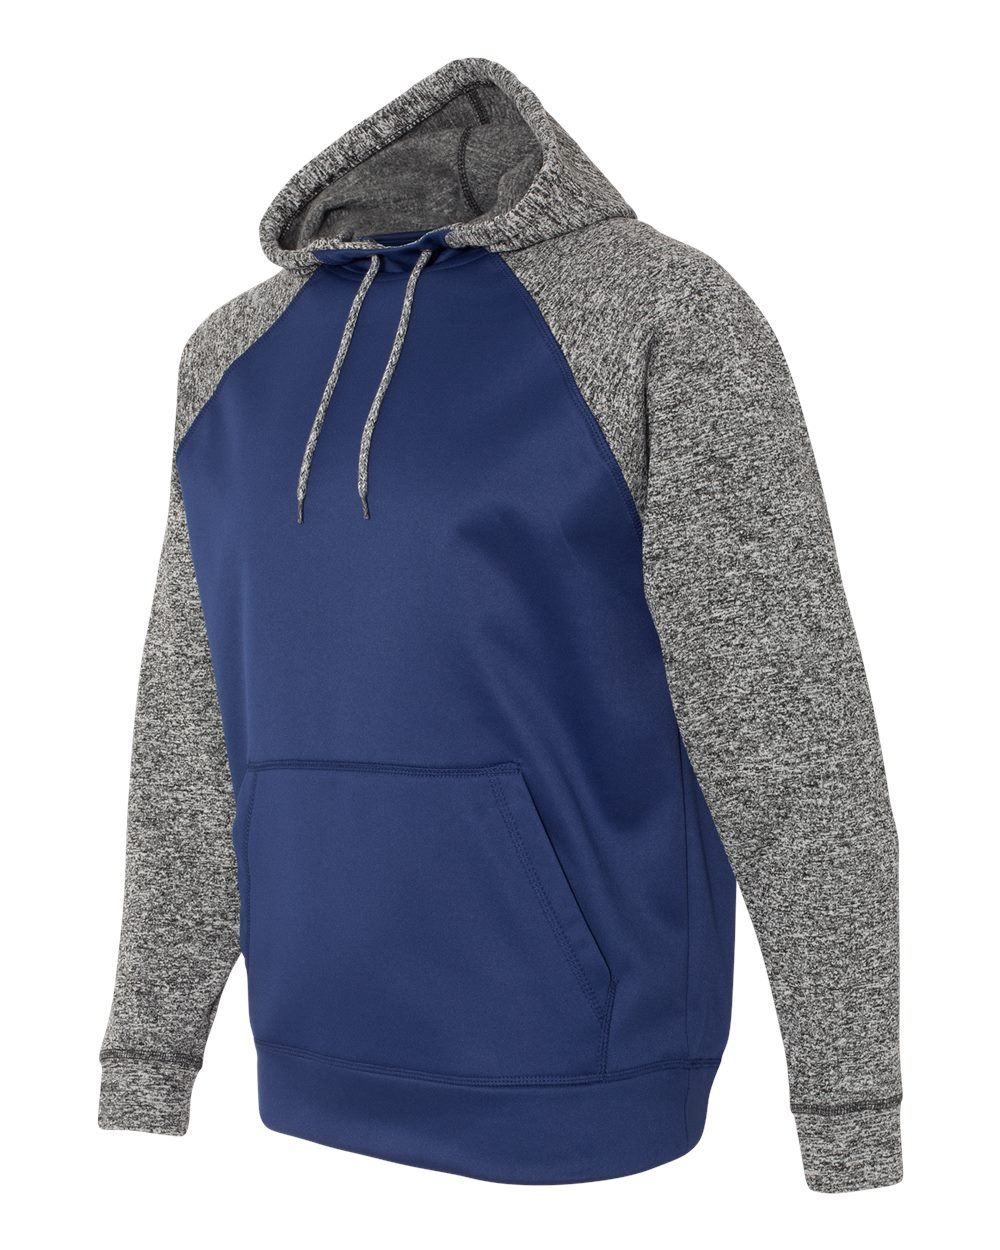 J. America 8612 - Colorblock Cosmic Fleece Hooded Pullover Sweatshirt